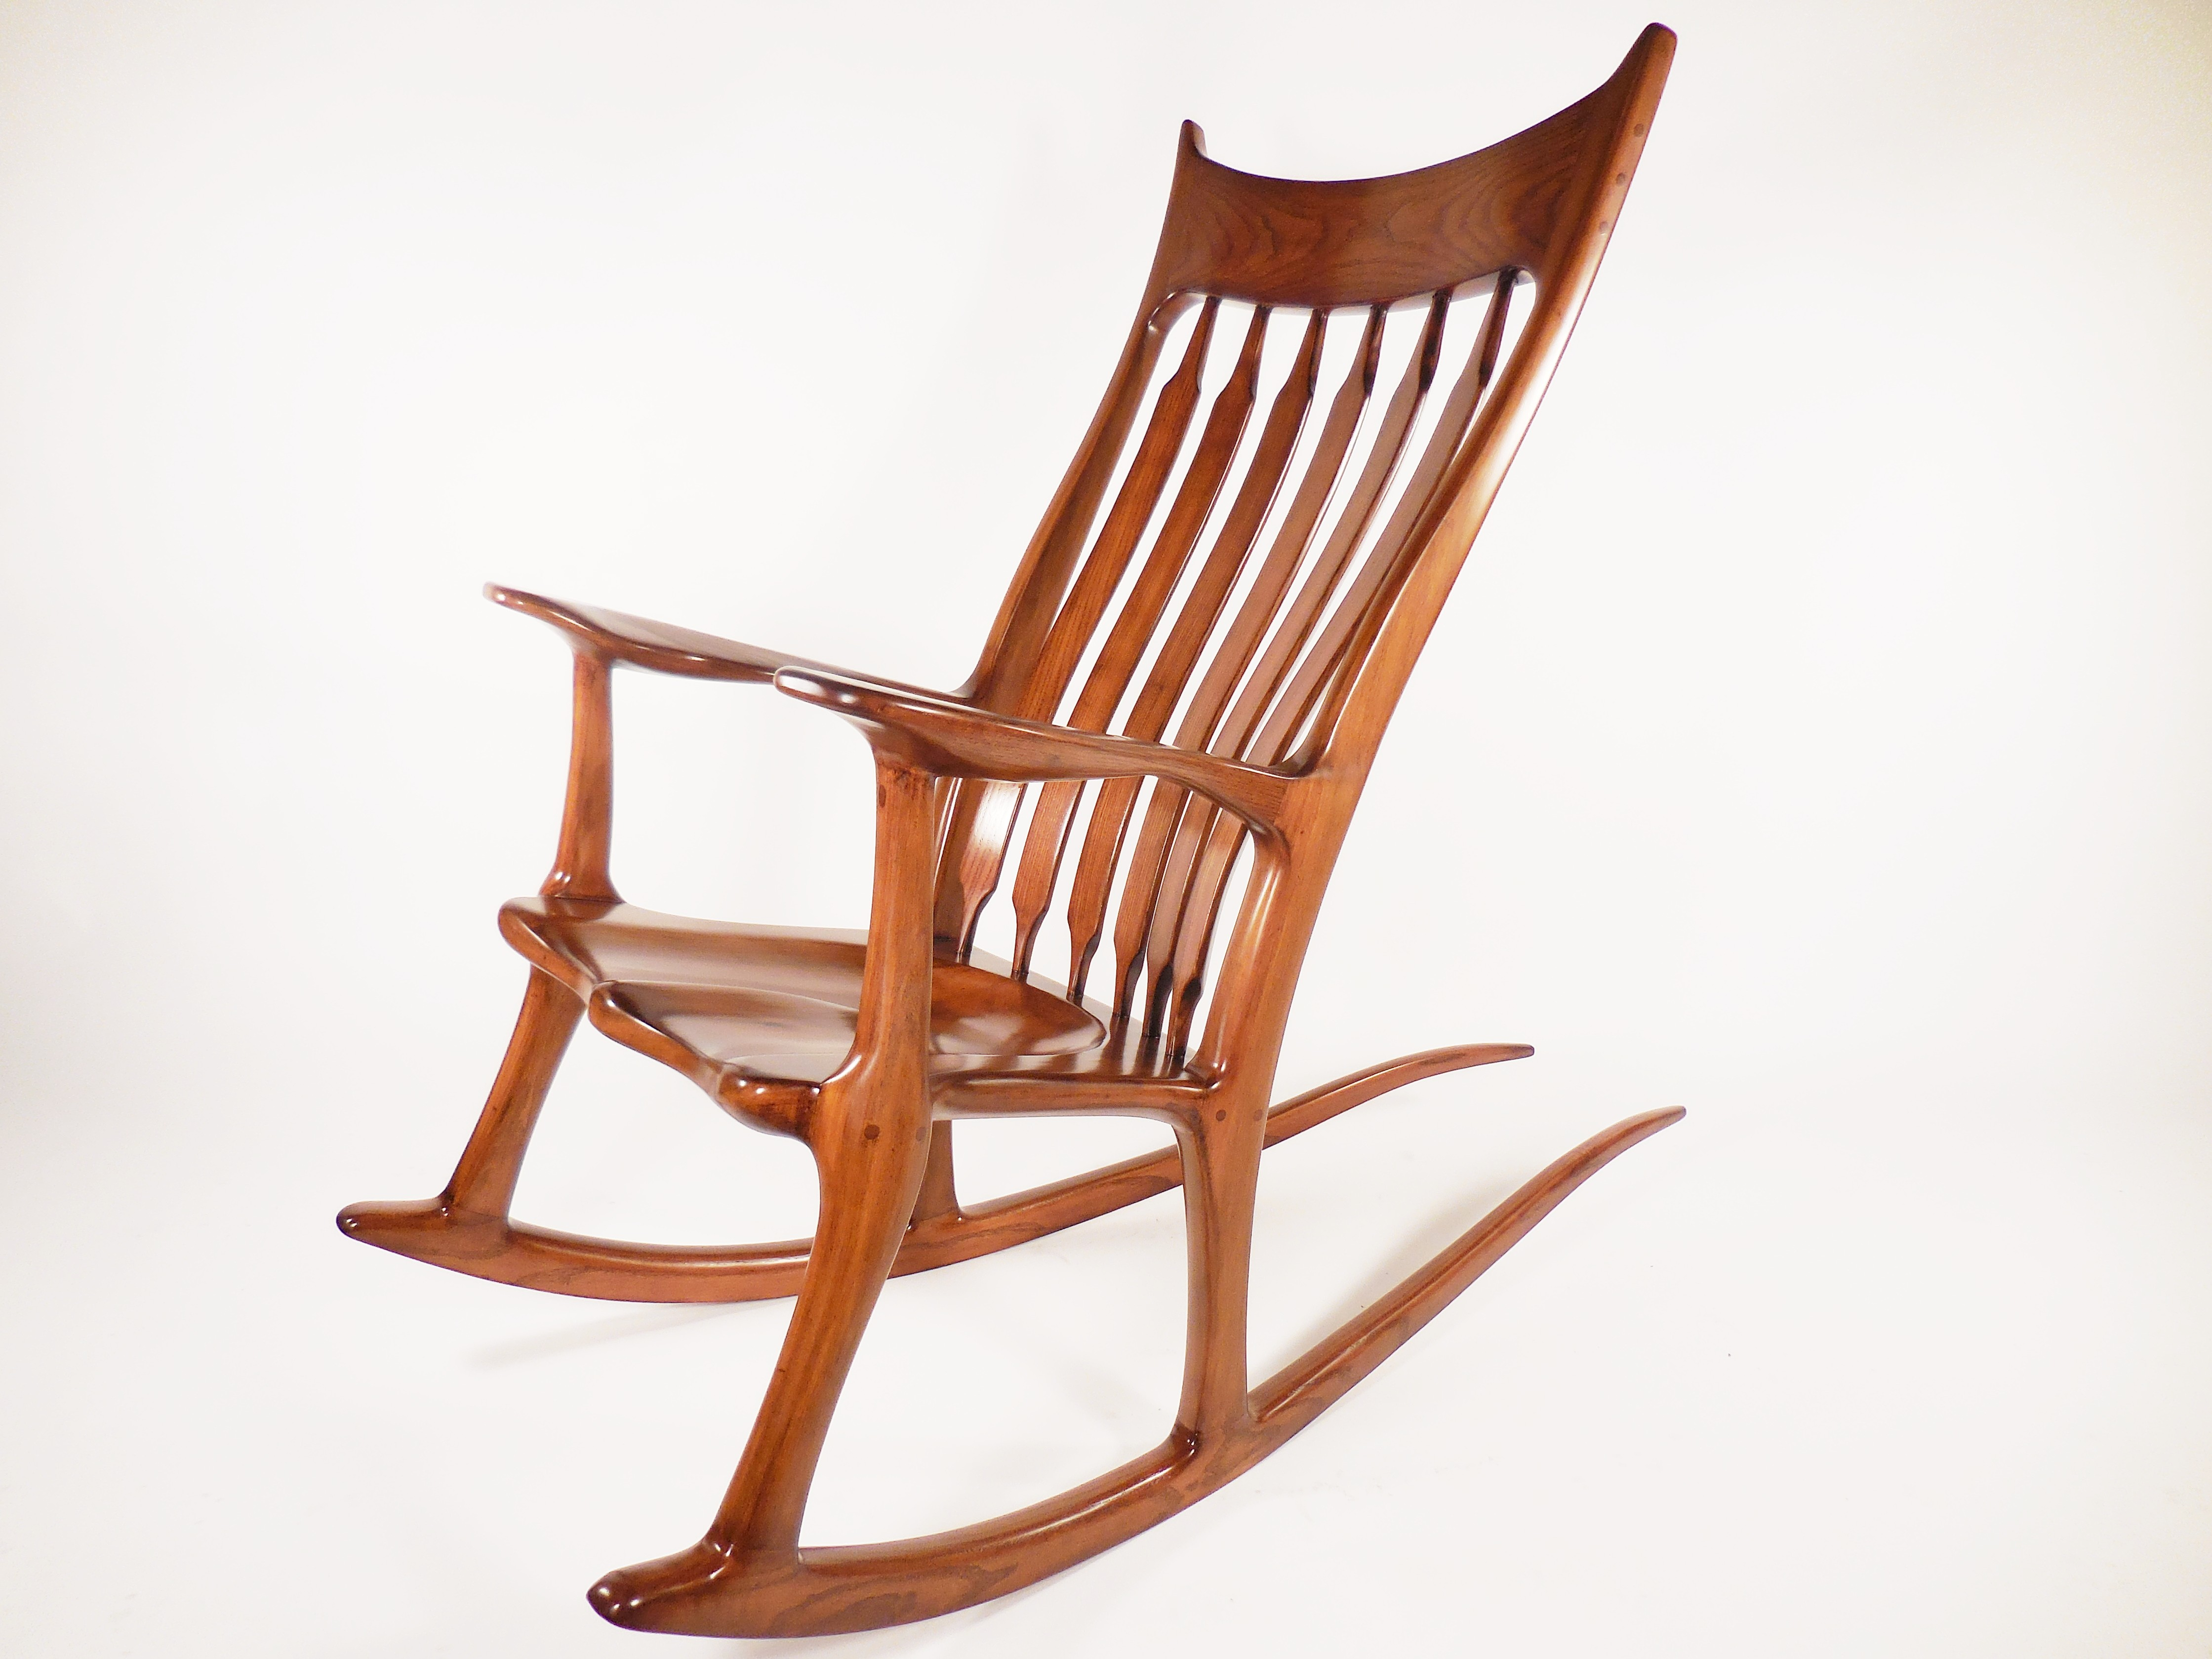 sam maloof rocking chair plans arne jacobsen vintage style apartment therapy